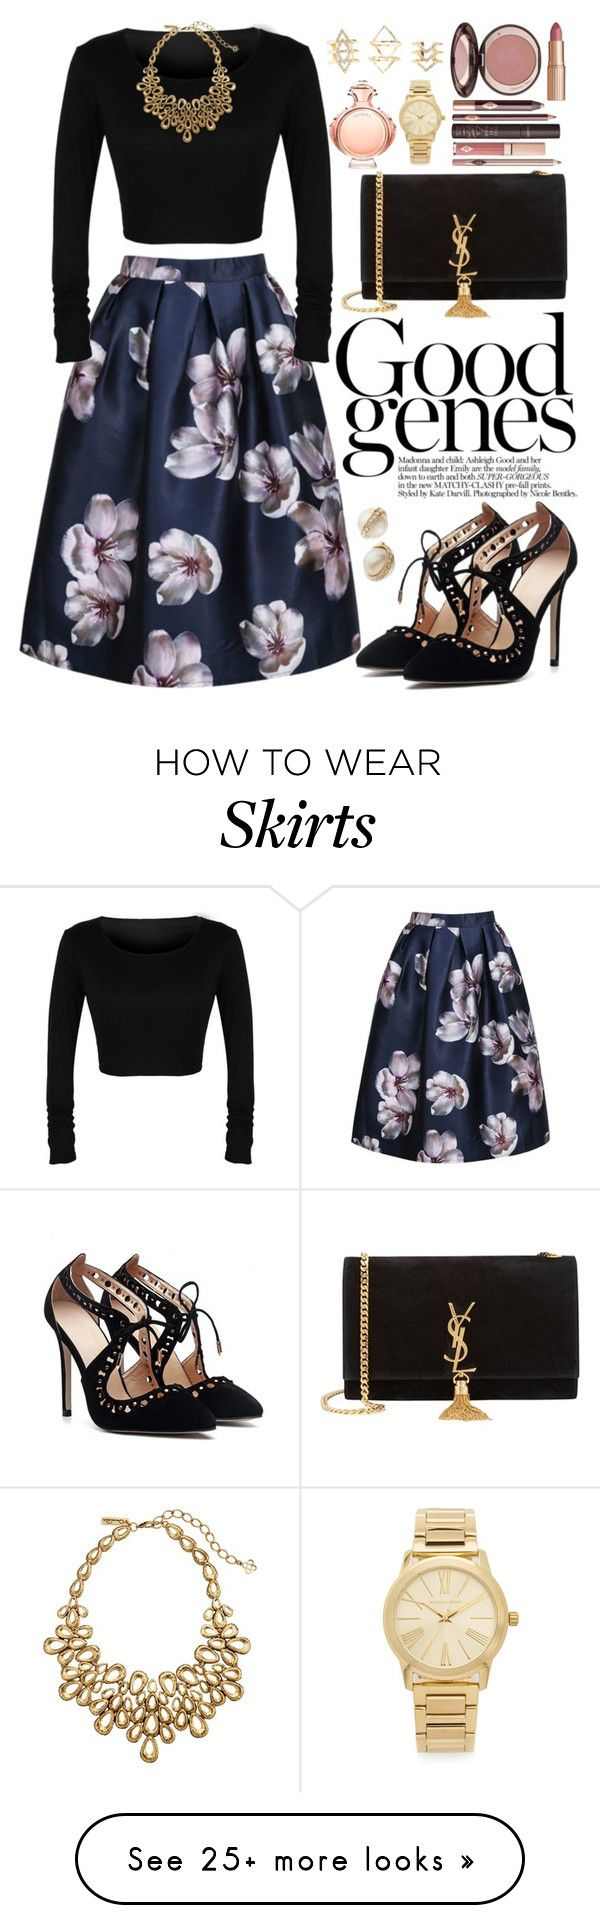 """Sassyselfie.com"" by oshint on Polyvore featuring Oscar de la Renta, Yves Saint Laurent, Charlotte Tilbury, Michael Kors, Charlotte Russe, Paco Rabanne and Kate Spade"